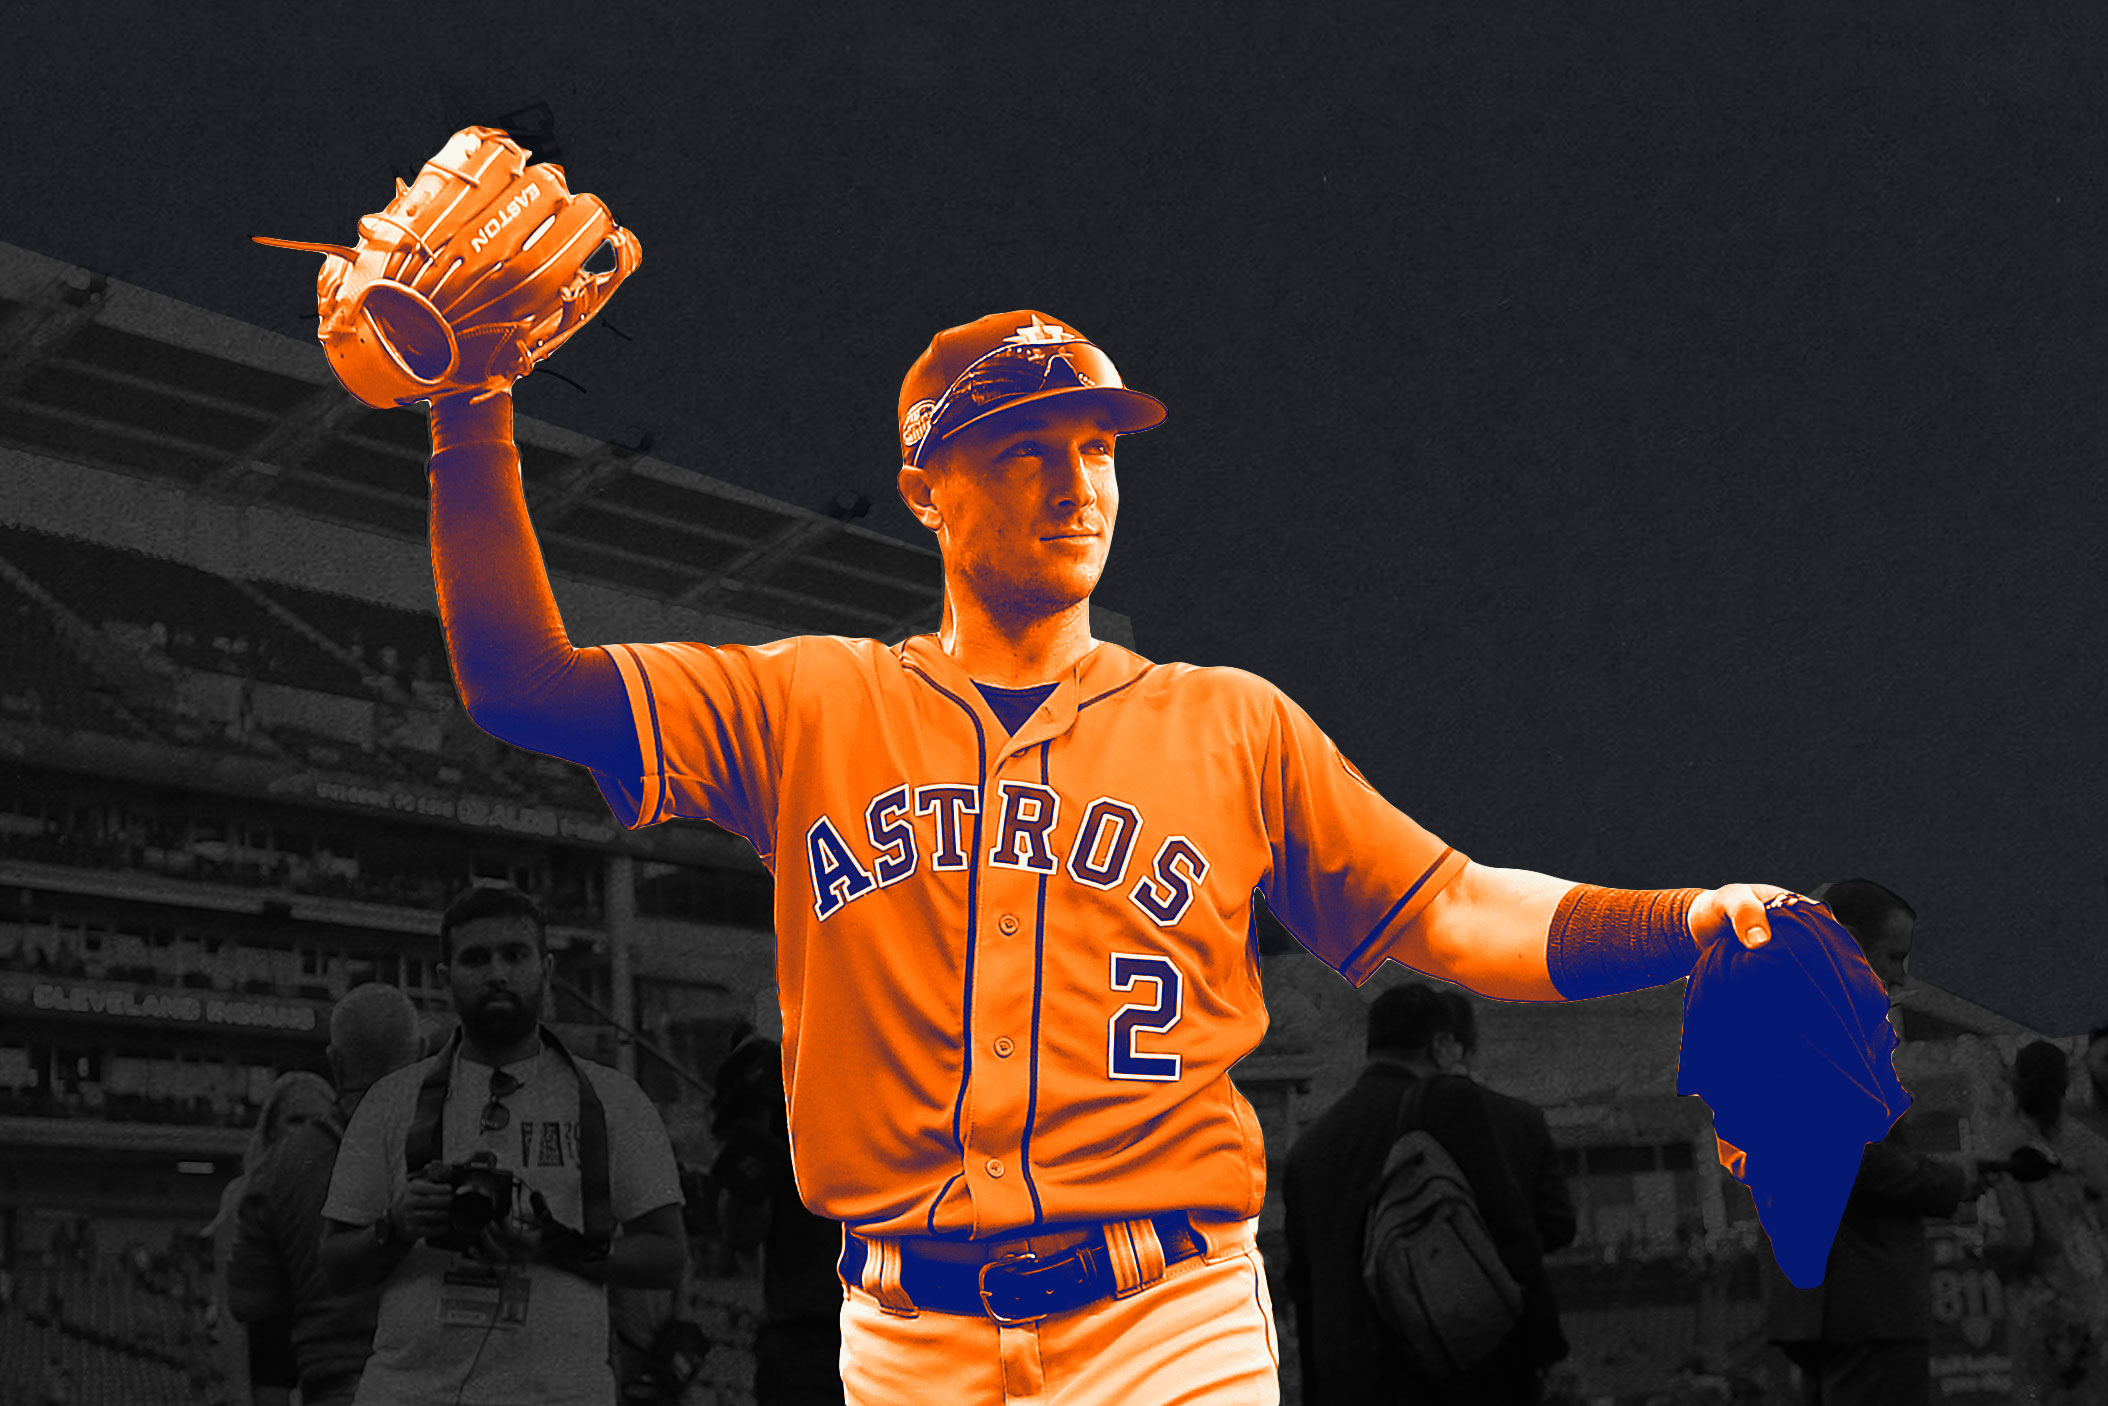 half off f2e2d bd16b Alex Bregman Is Baseball's Next Supervillain - The Ringer